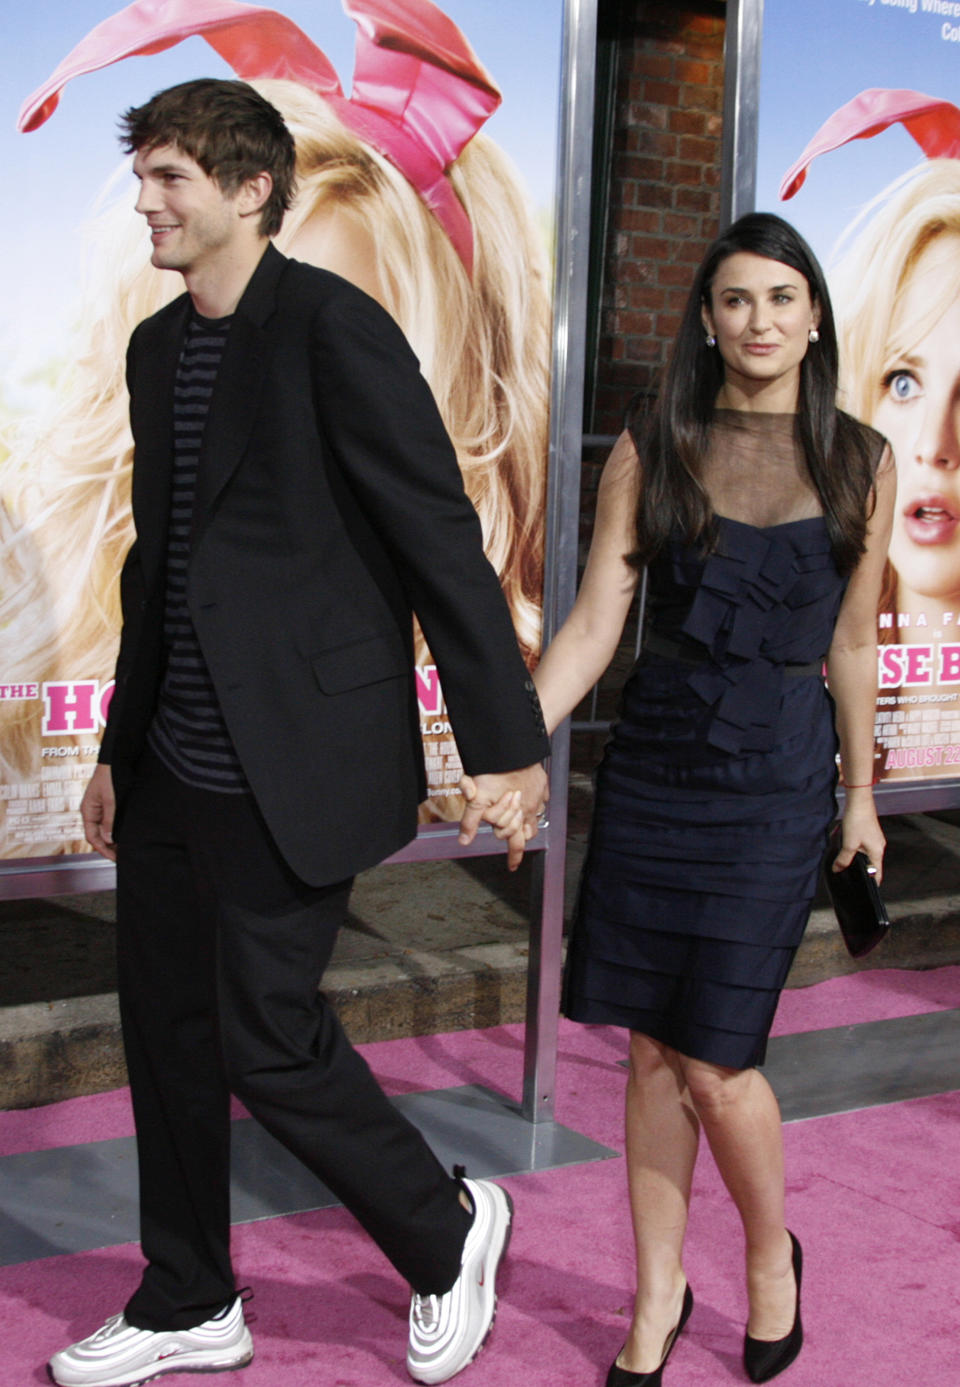 """Actress Demi Moore and her husband actor Ashton Kutcher arrive for the premiere of """"The House Bunny"""", which stars Moore's daughter Rumer Willis, in Los Angeles August 20, 2008. REUTERS/Fred Prouser (UNITED STATES)"""